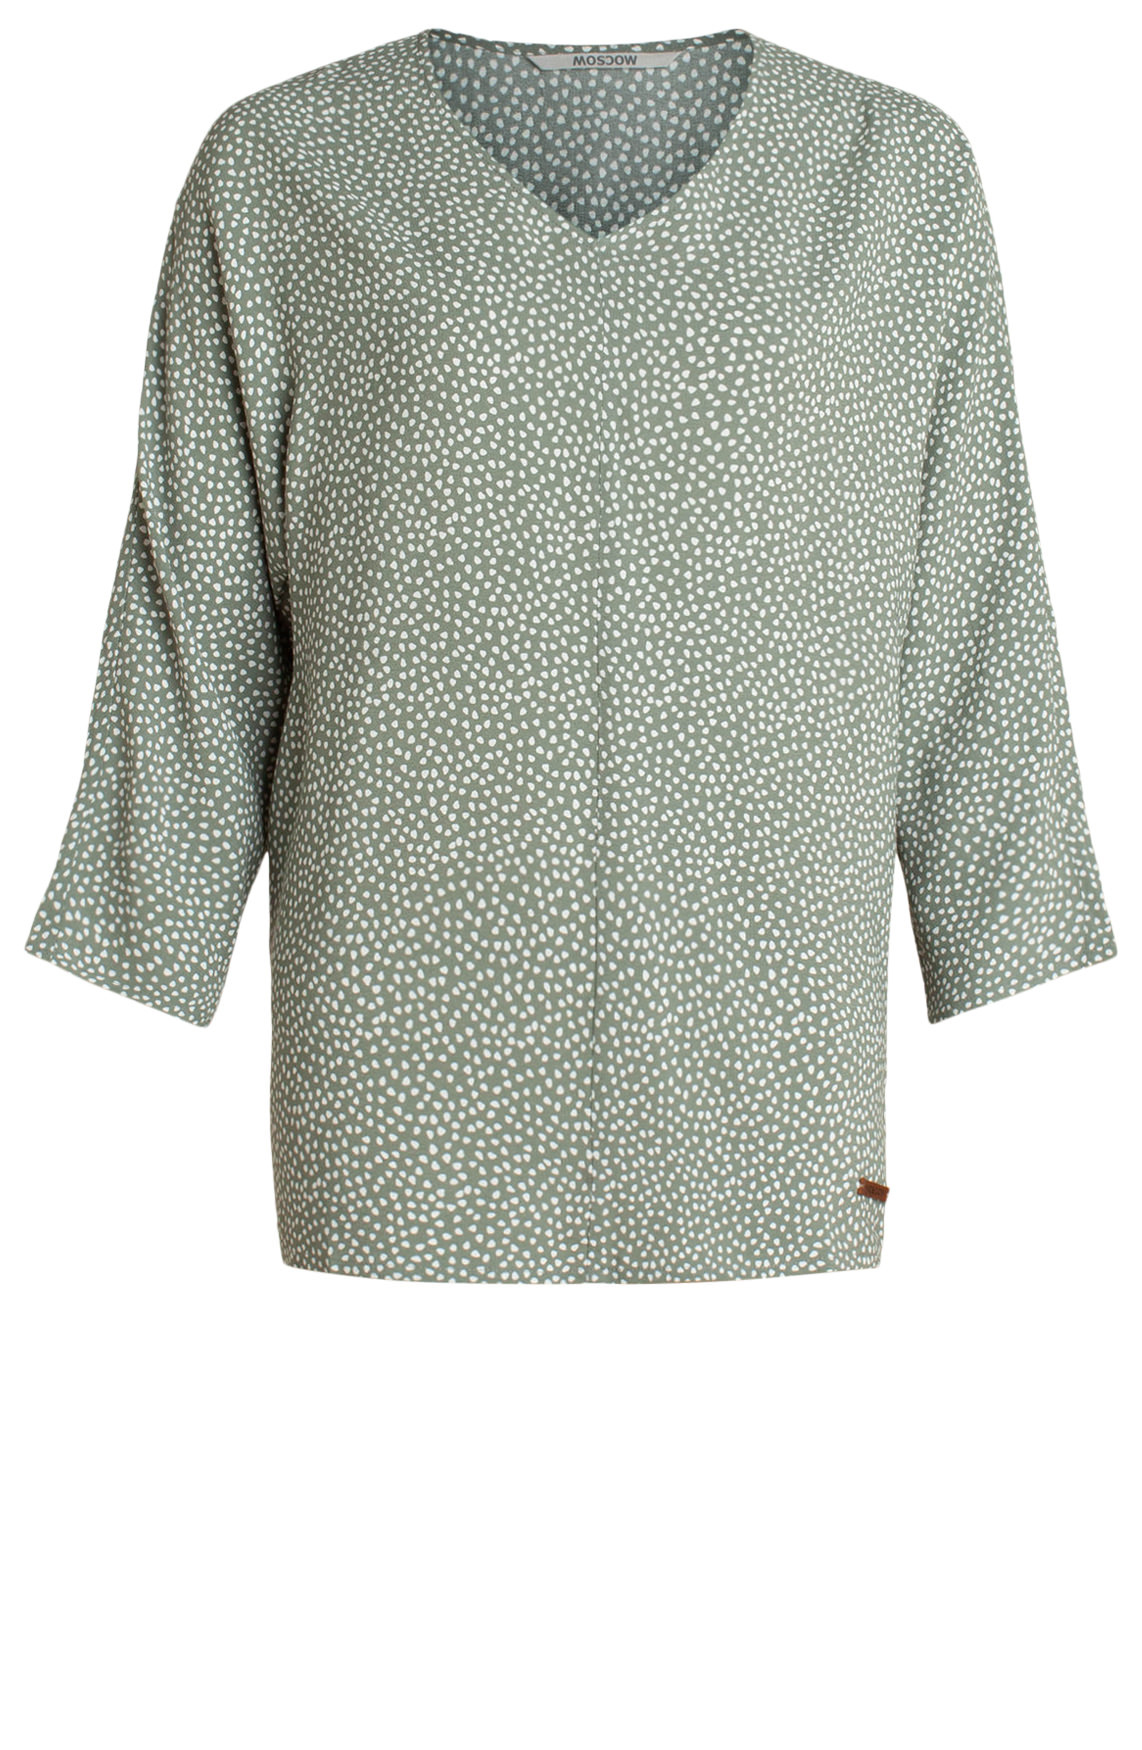 Moscow Dames Blouse with polka dot print groen